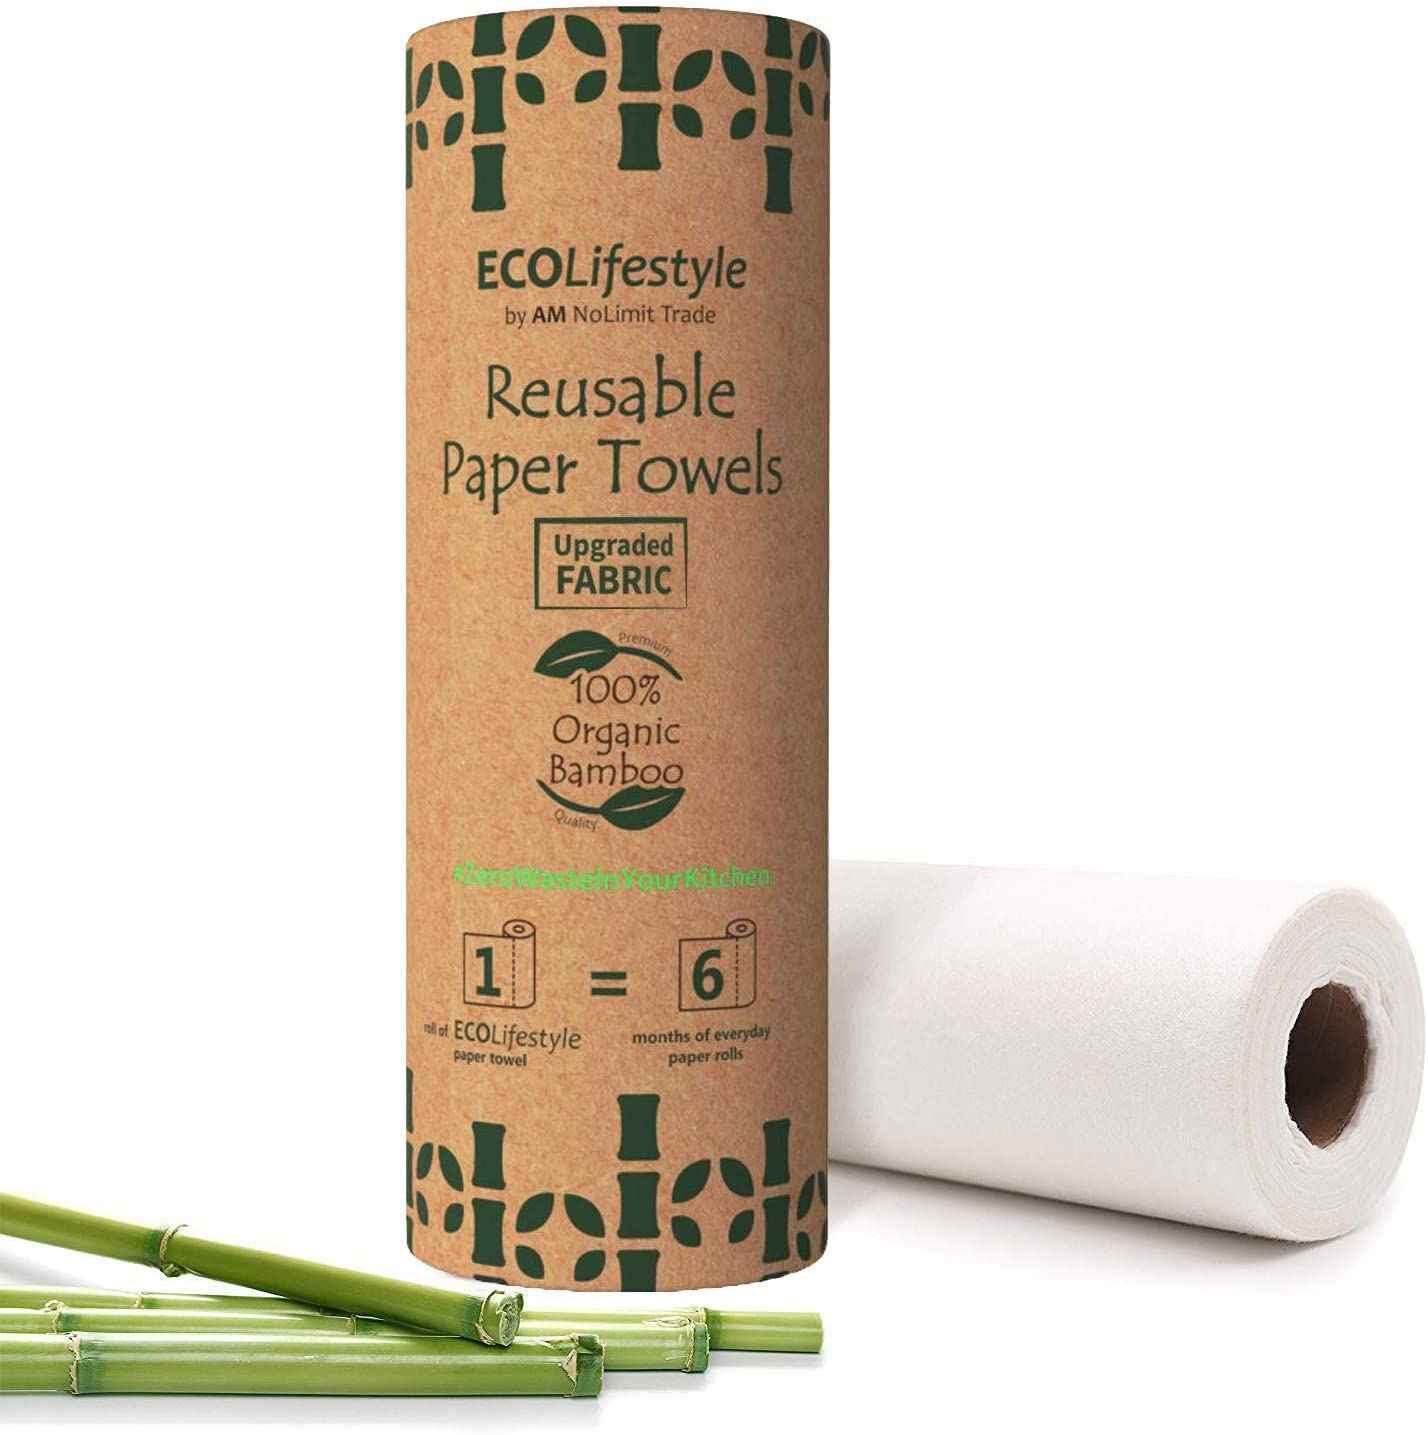 Bamboo Reusable Paper Towels (20 Sheets) Zero Waste Unpaper Towel Eco Friendly Products Sustainable Gifts - Kitchen Cleaning Rolls Alternative - Paper Towels Bulk Recycled Washable Napkins Cloth